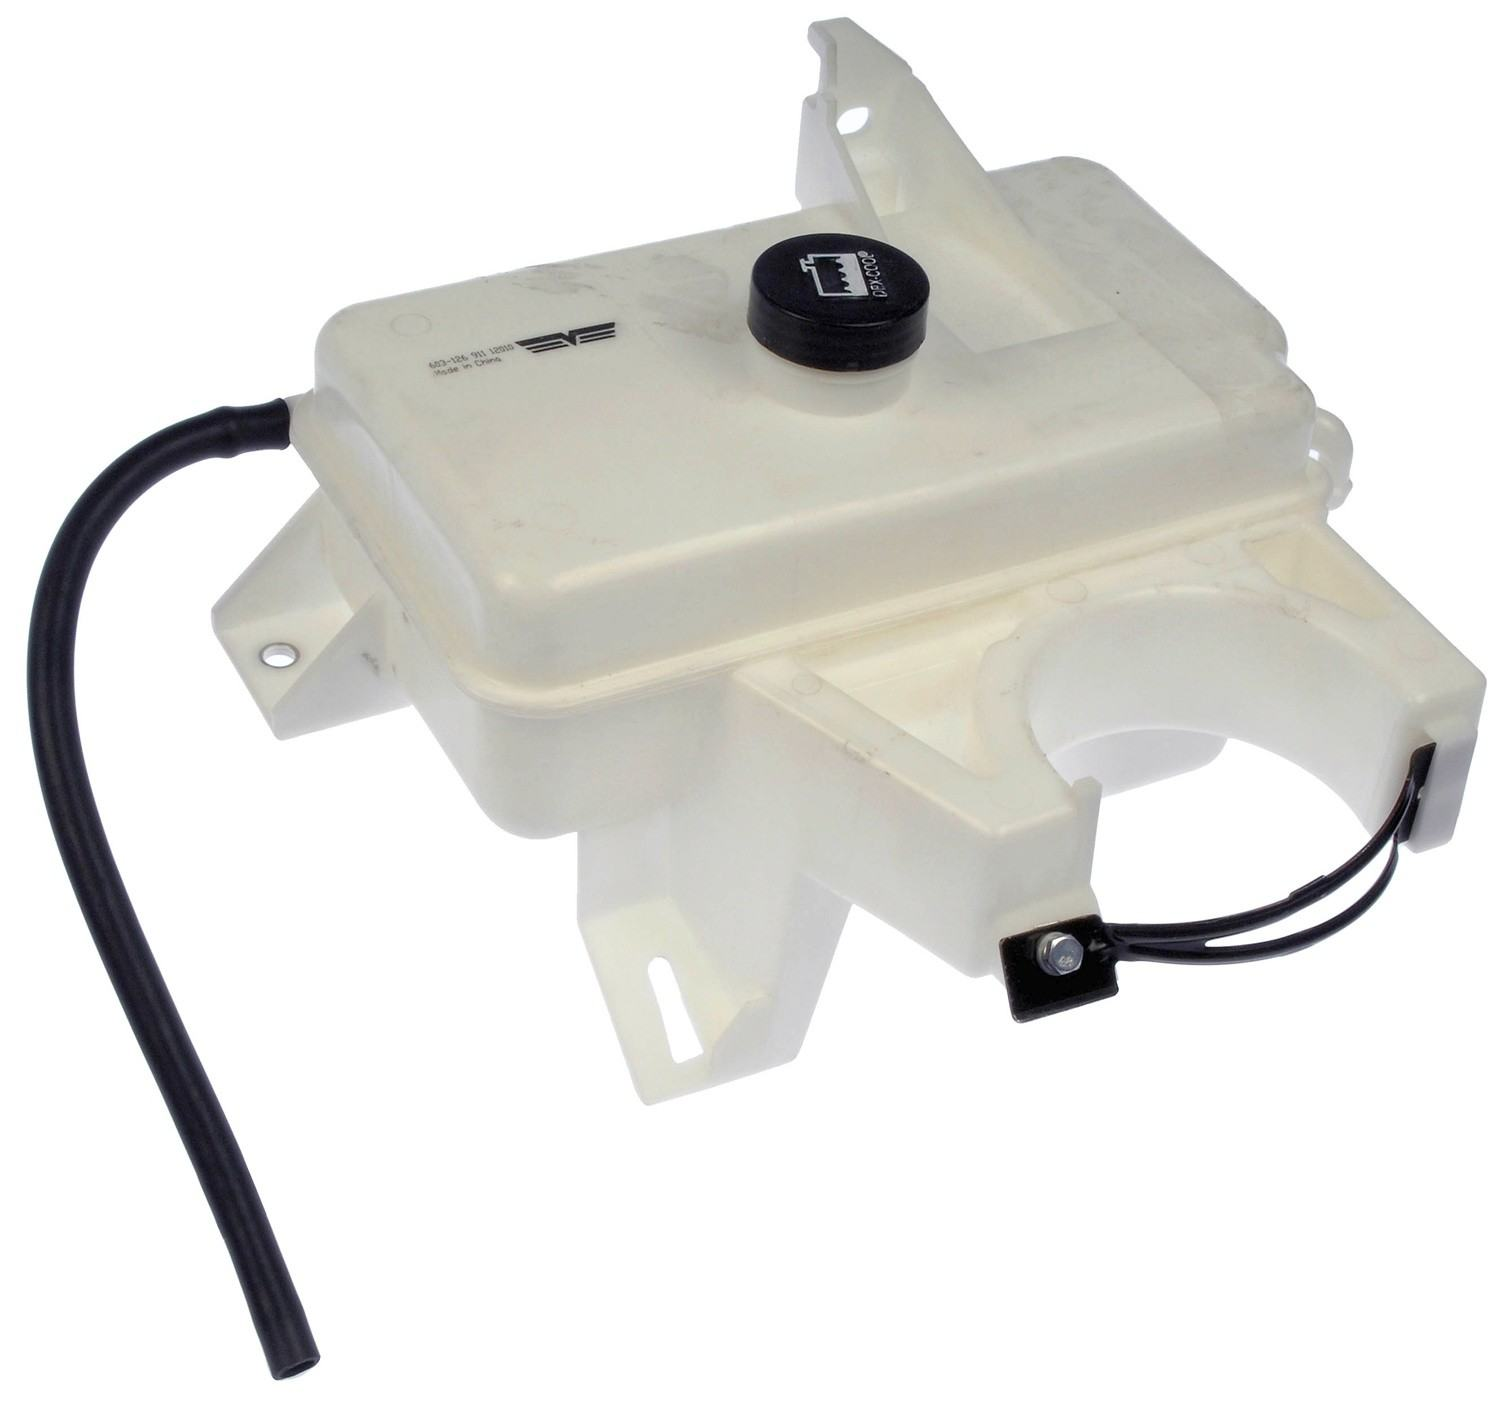 DORMAN OE SOLUTIONS - Engine Coolant Recovery Tank (Front) - DRE 603-126